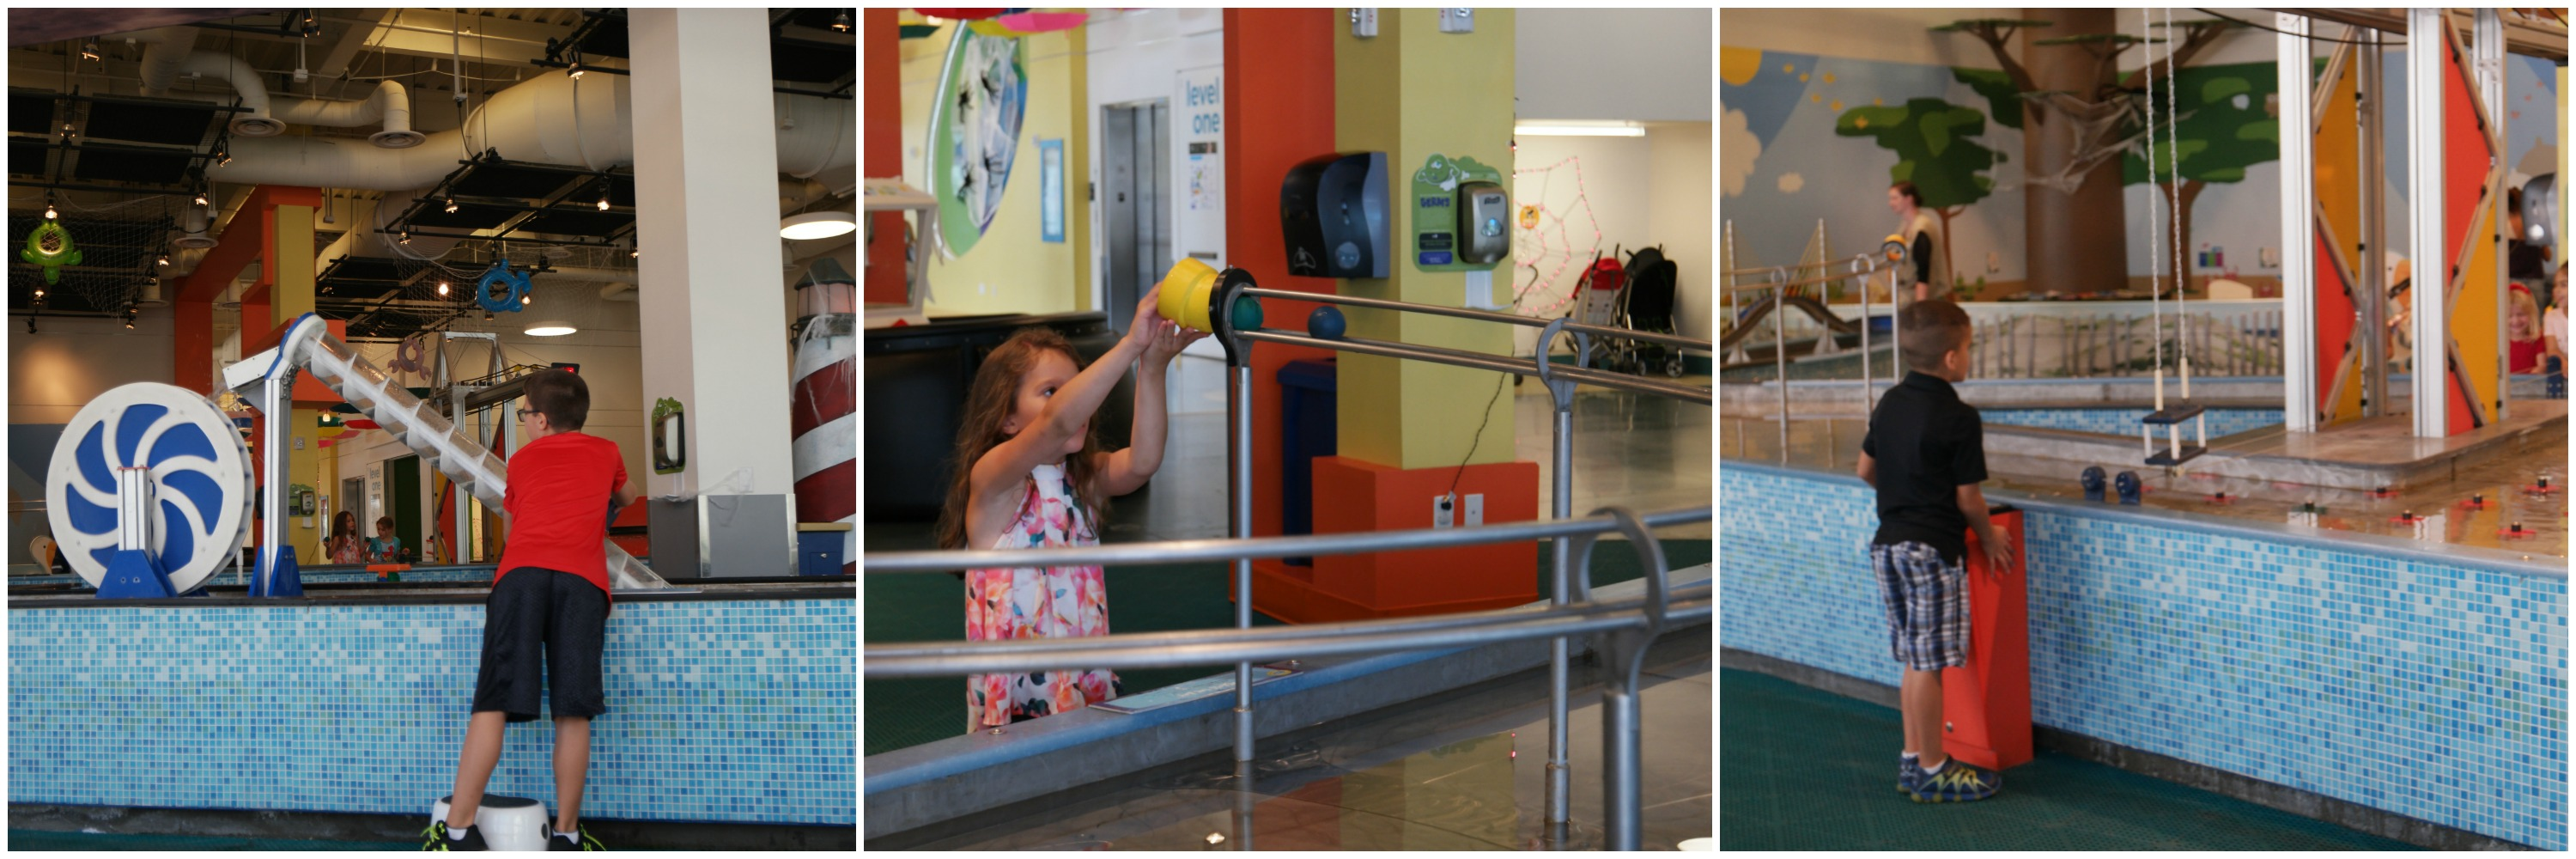 Glazer-childrens-museum-tampa-with-kids-riverwalk